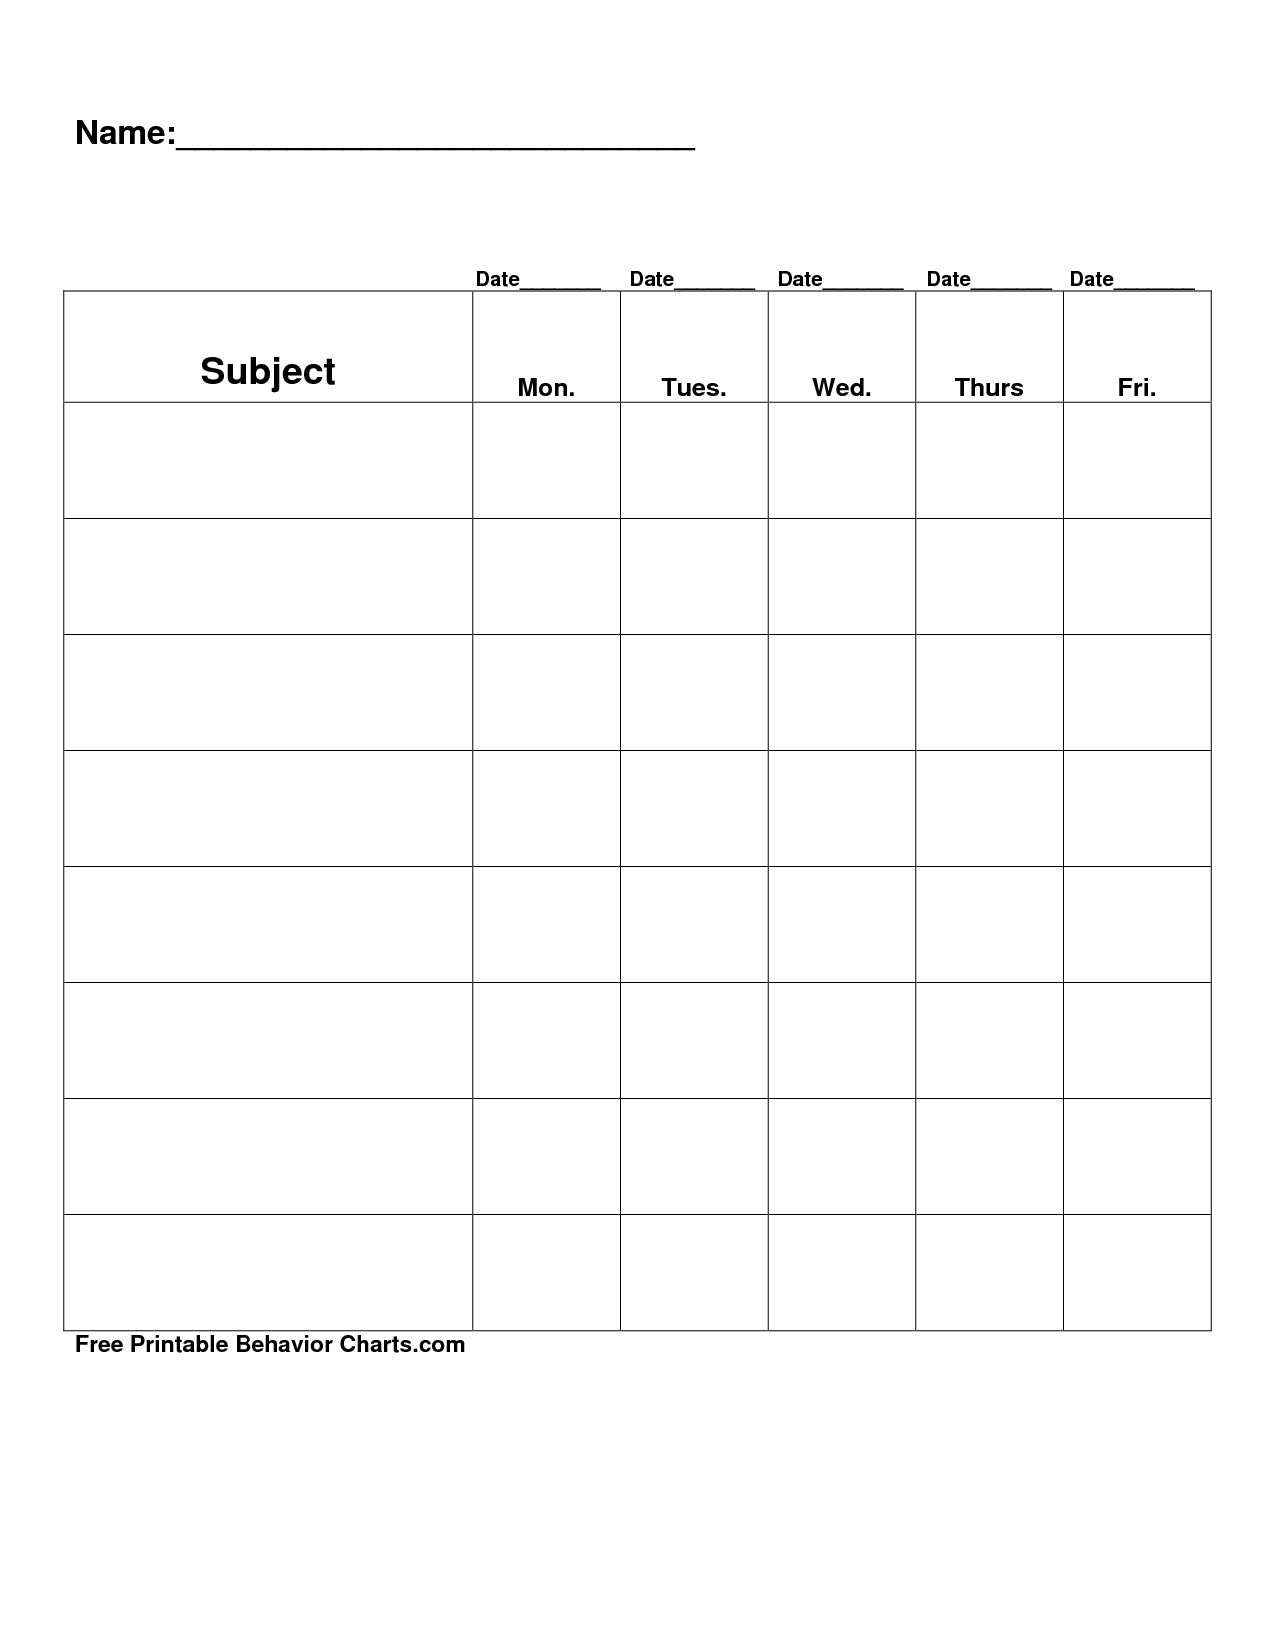 Free Printable Blank Charts | Free Printable Behavior Charts Com   PDF  Free Printable Reward Charts For Teachers